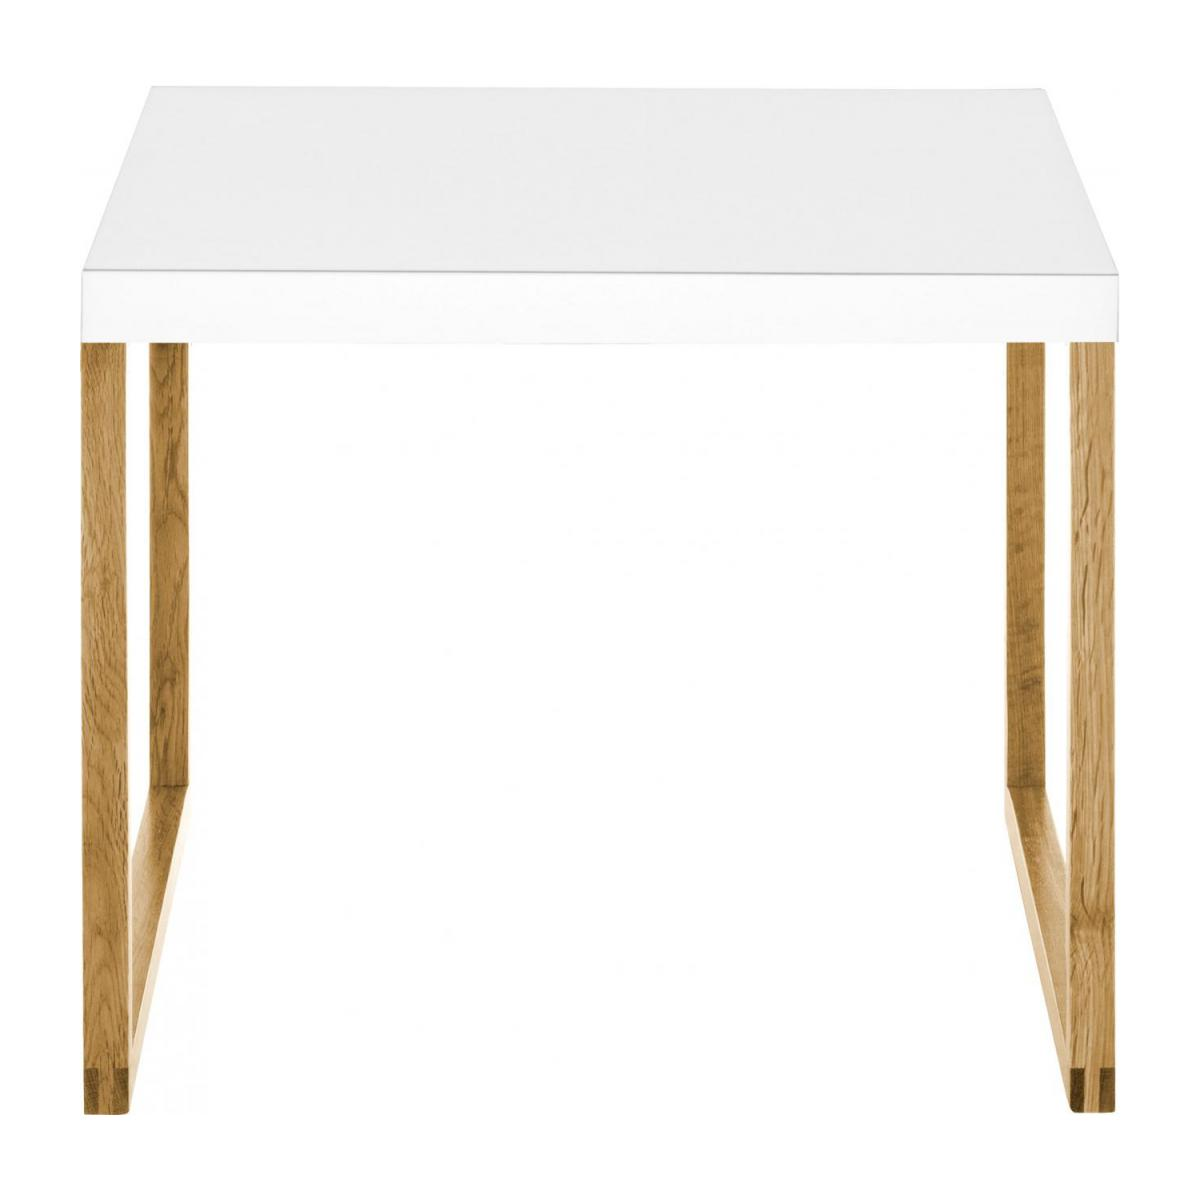 Table d'appoint blanche n°3